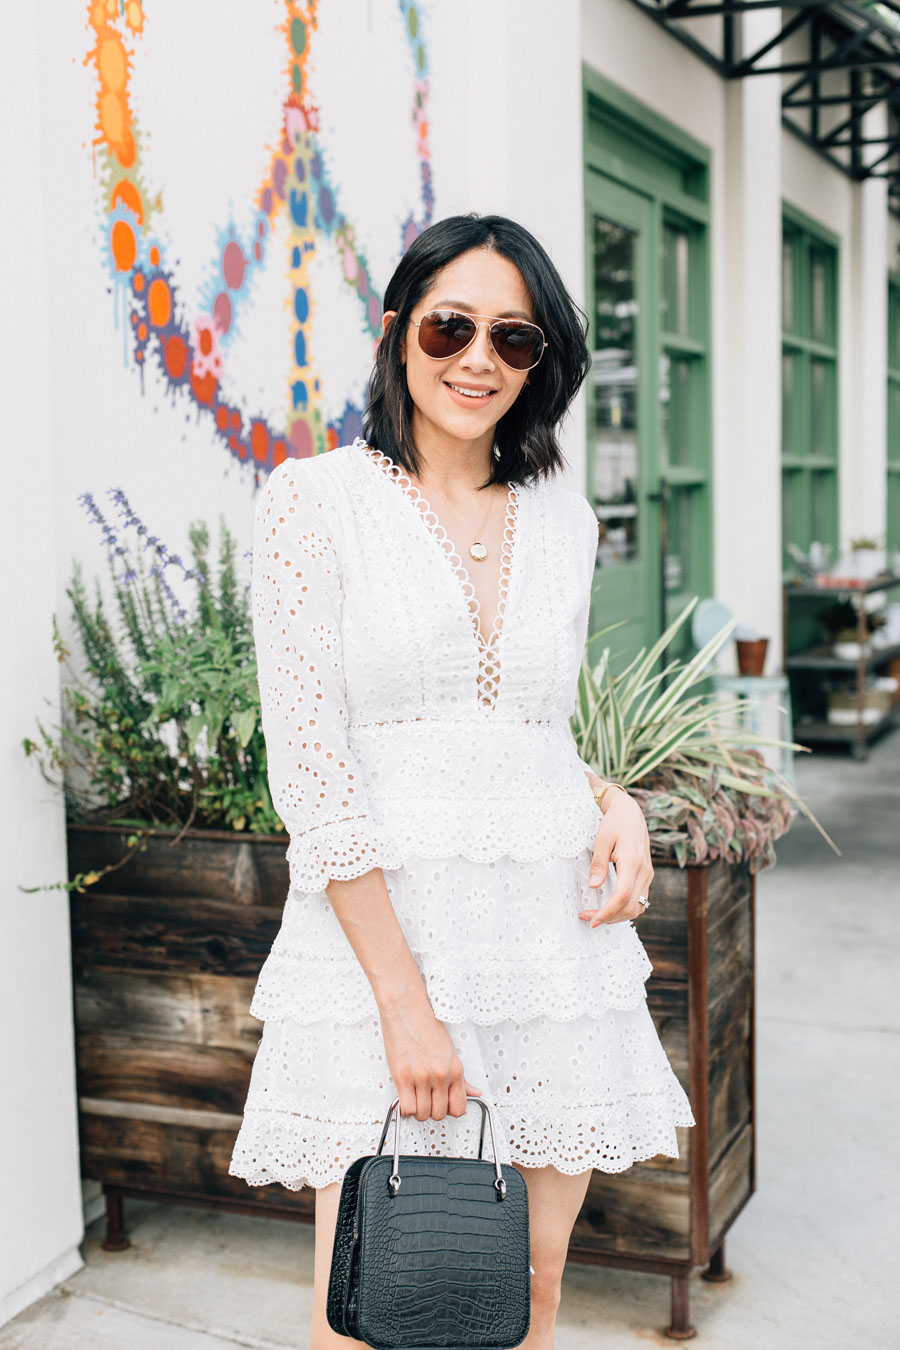 Lifestyle blogger Lilly Beltran wearing a white eyelet dress for a summer date night look.